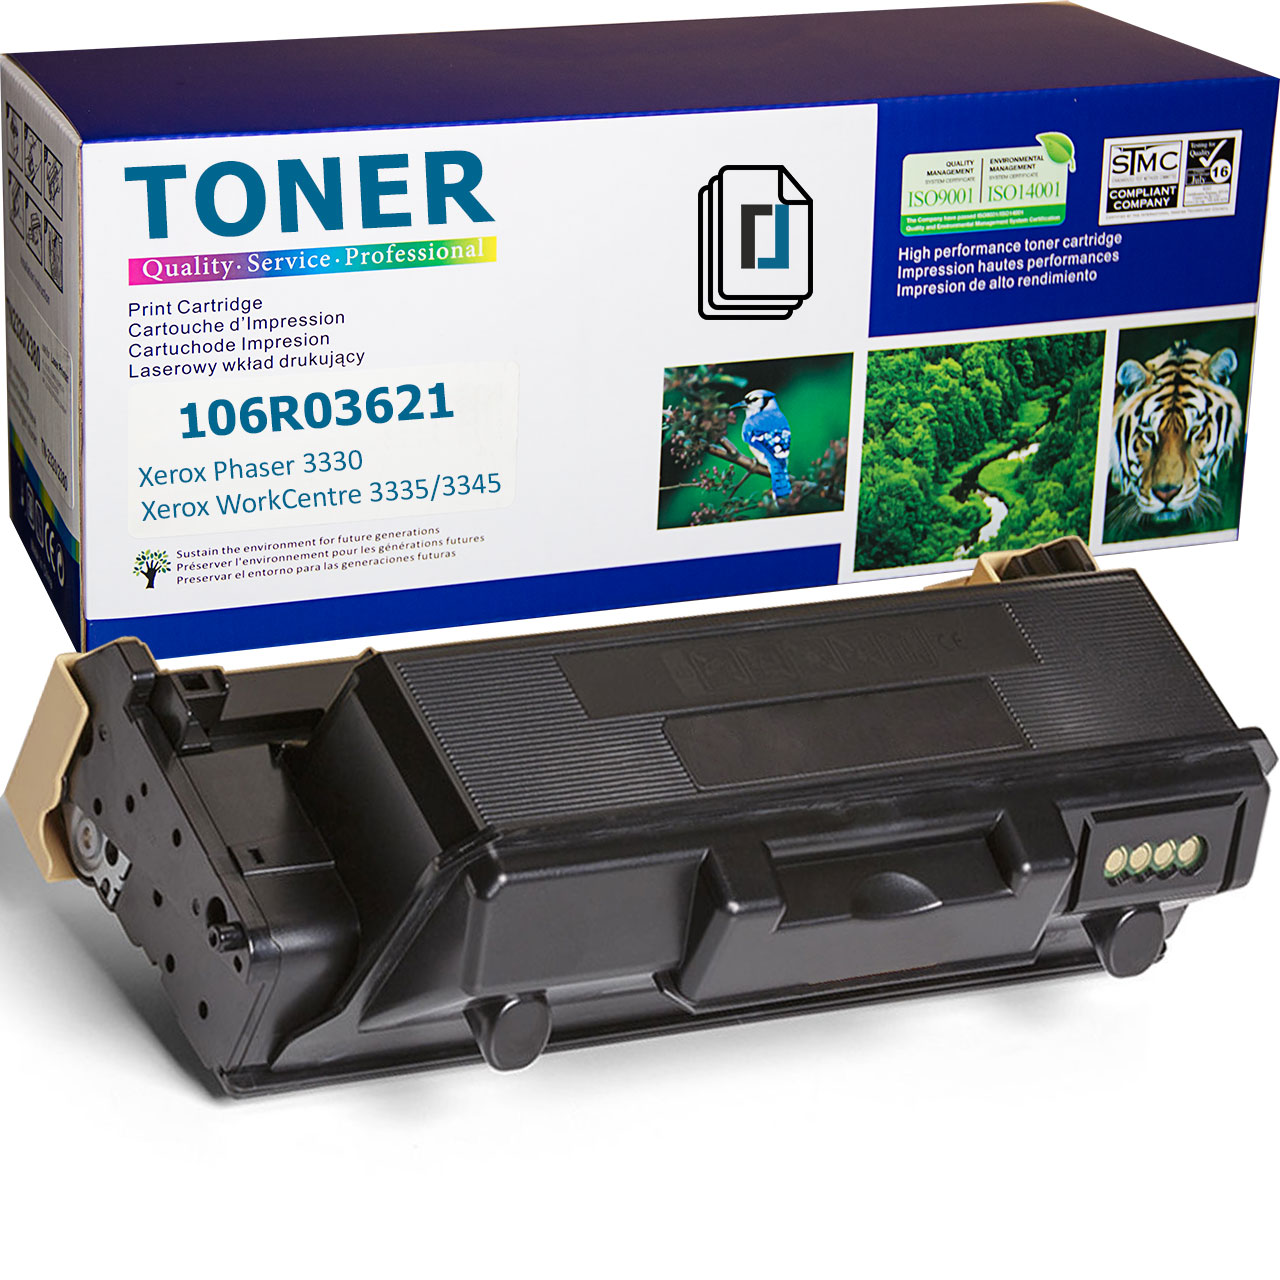 106R03621 Toner Cartridge compatible with Xerox WorkCentre 3335